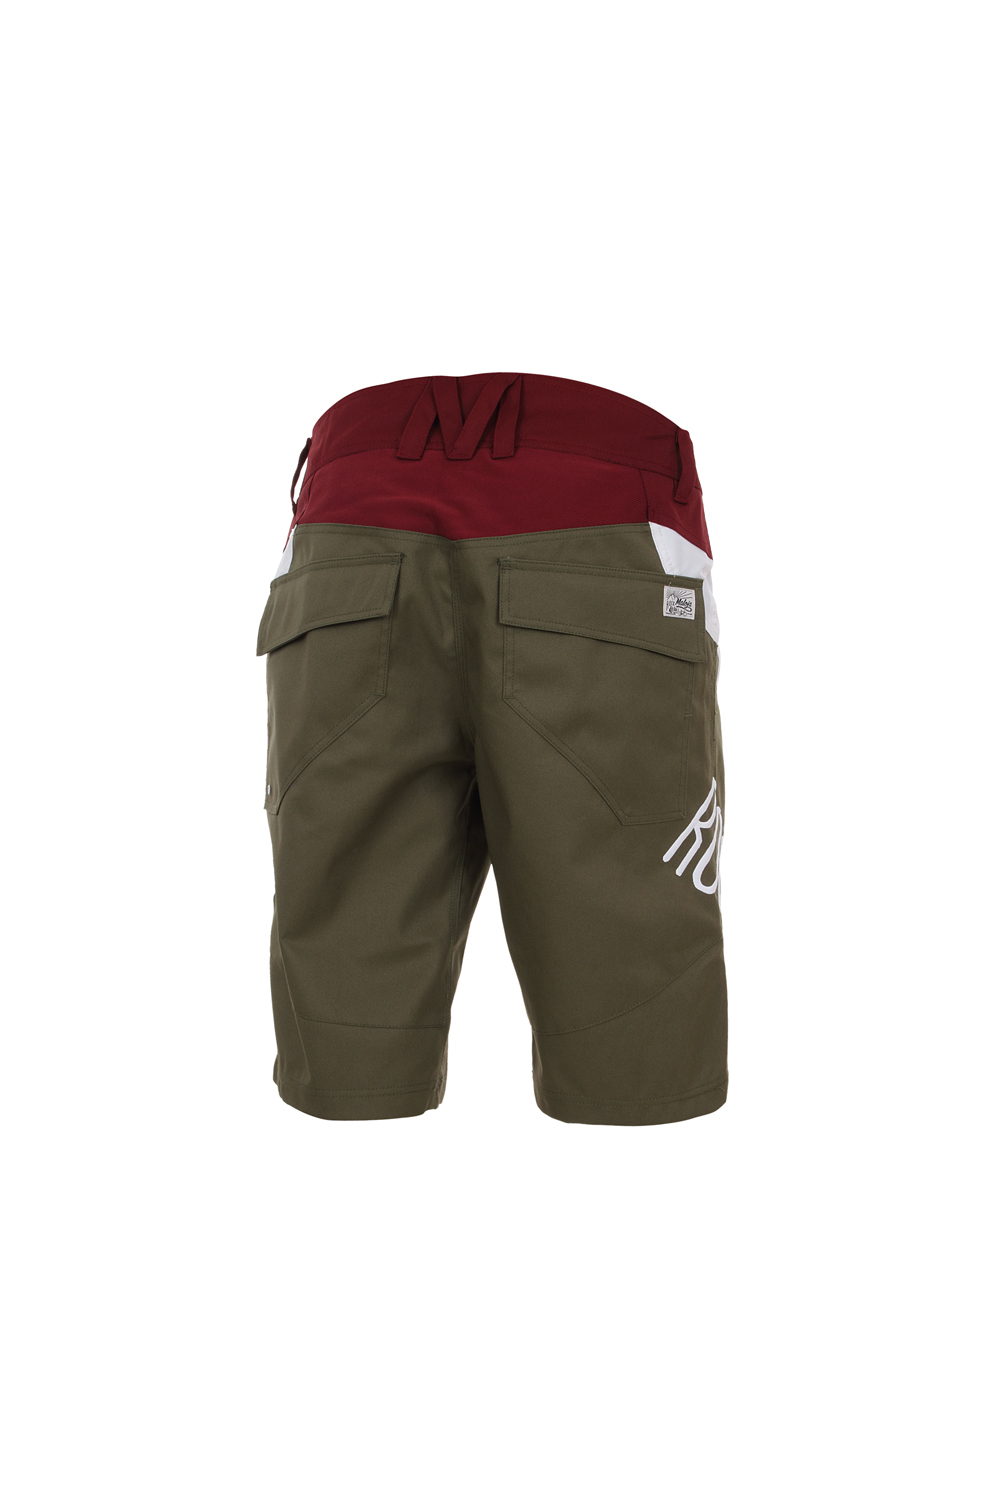 maloja radhose freeride shorts goldiem gr n canvas mesh. Black Bedroom Furniture Sets. Home Design Ideas